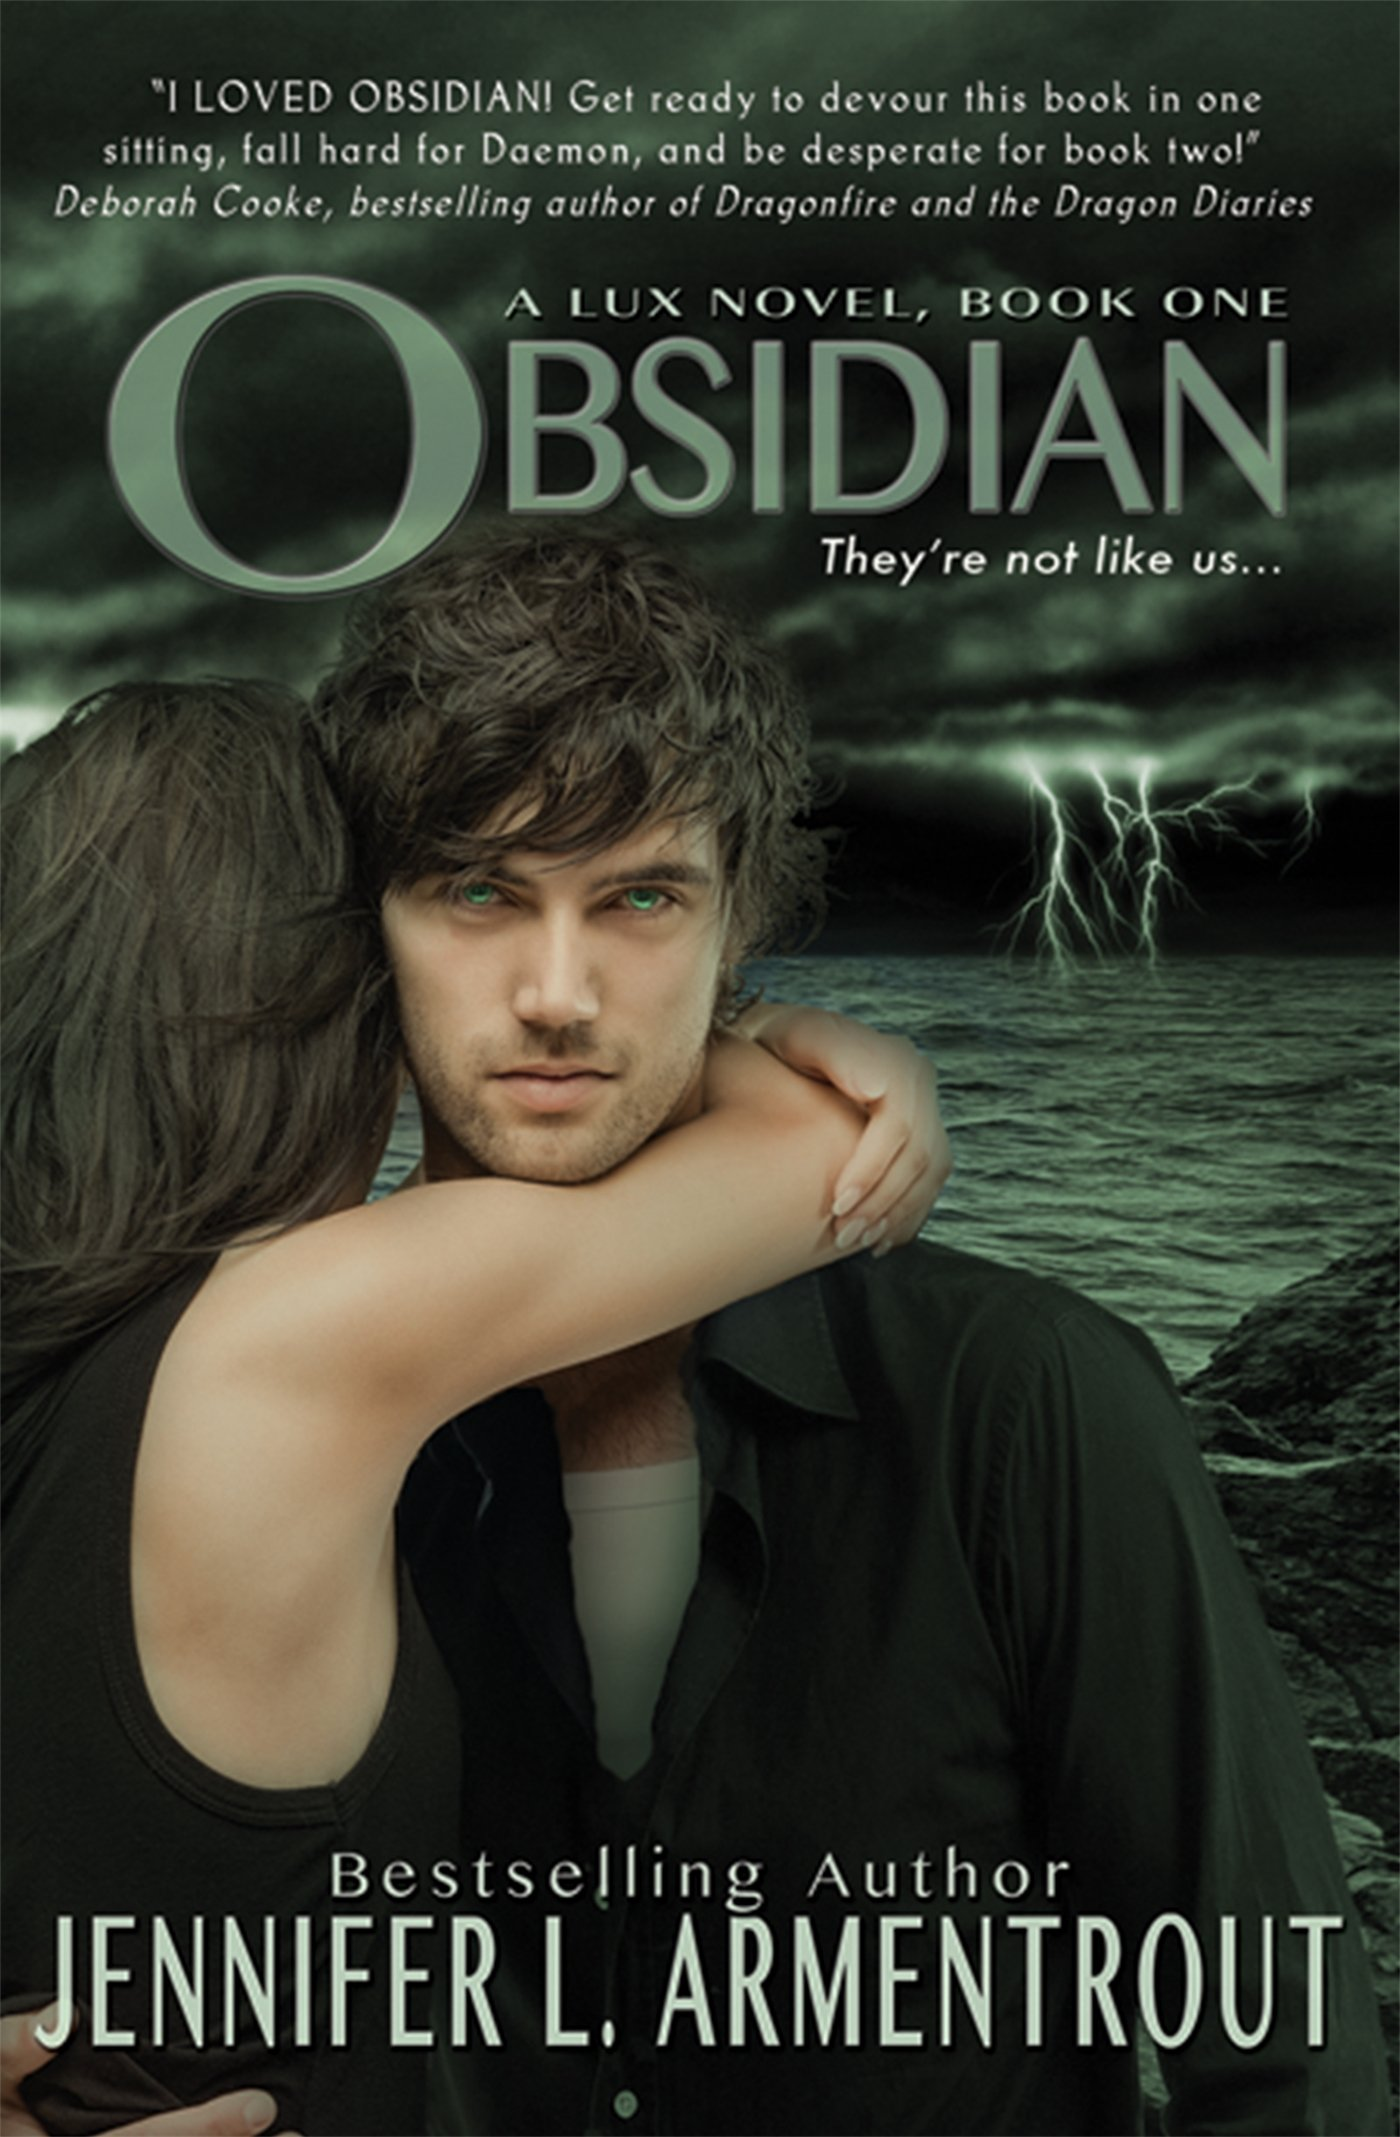 Image result for obsidian book cover